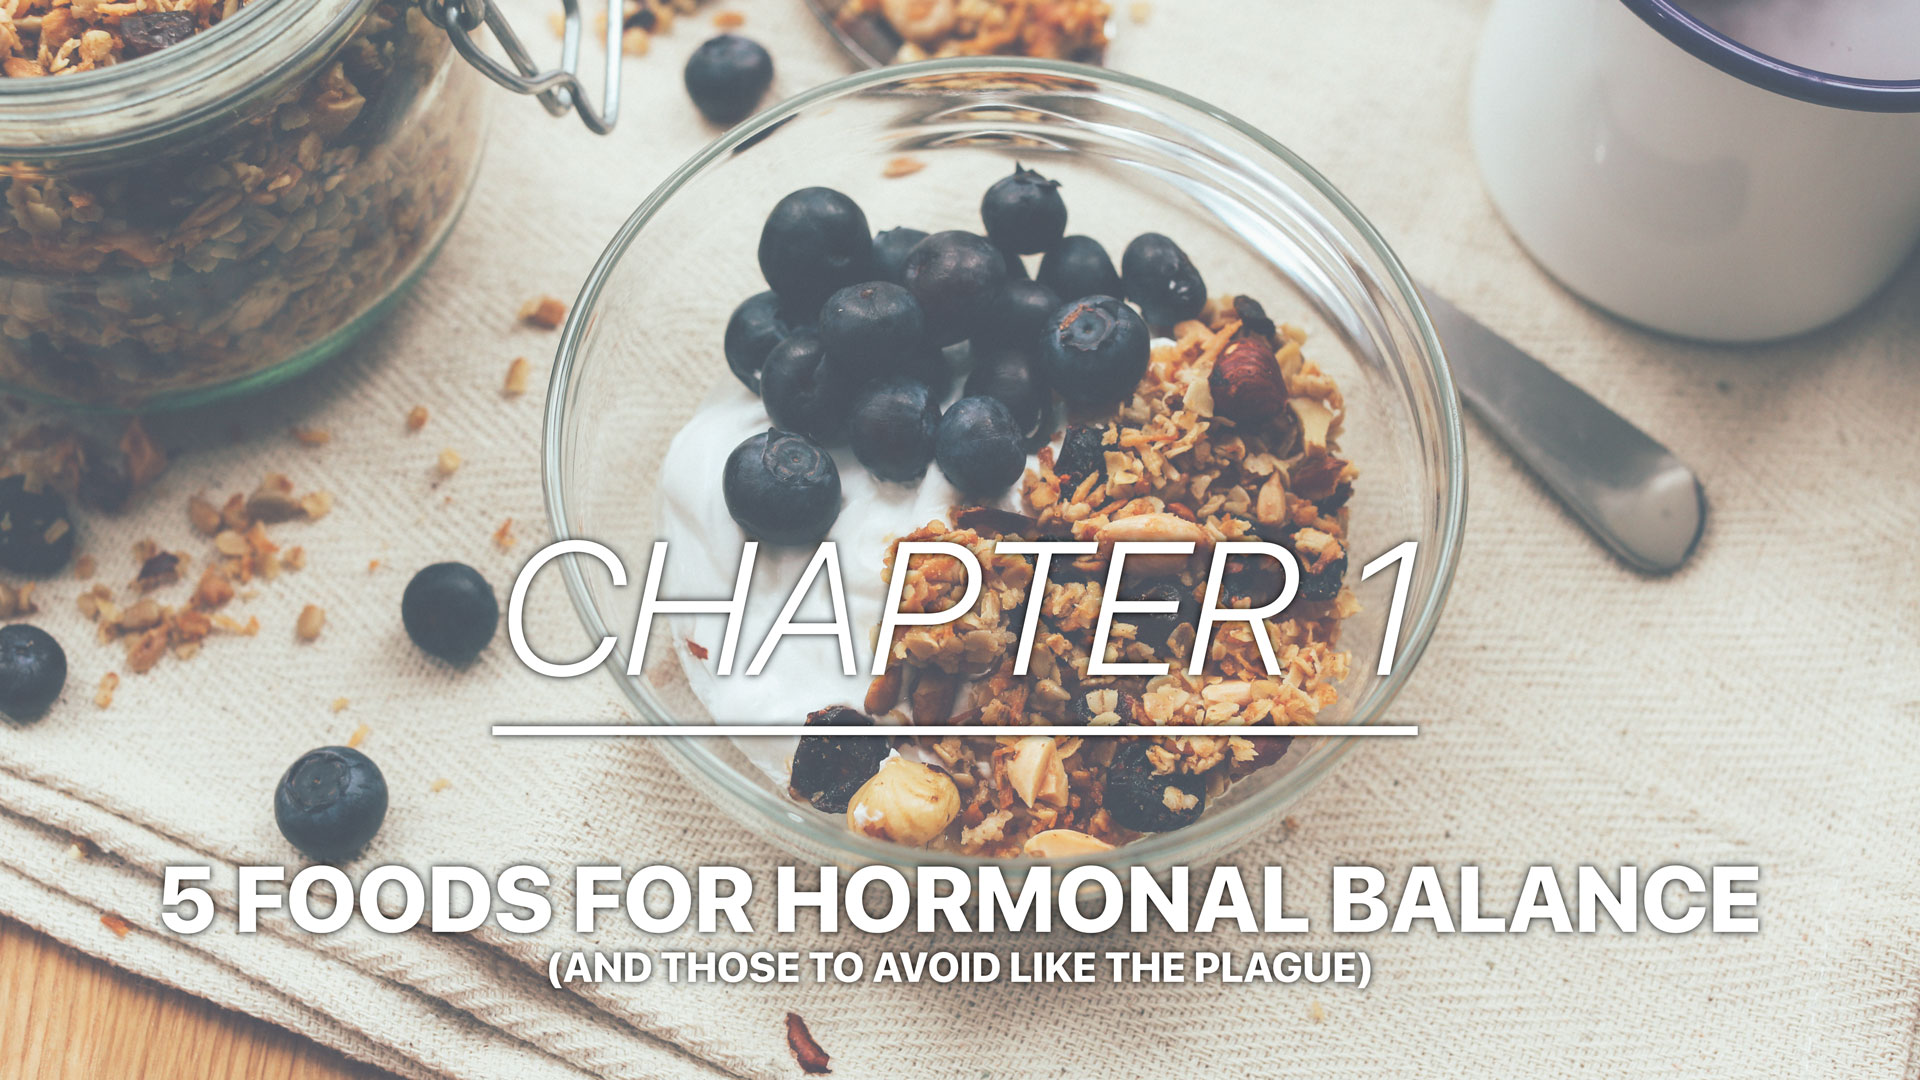 How to Feel Amazing in Menopause Audiobook Chapter 1- 5 foods for hormonal balance